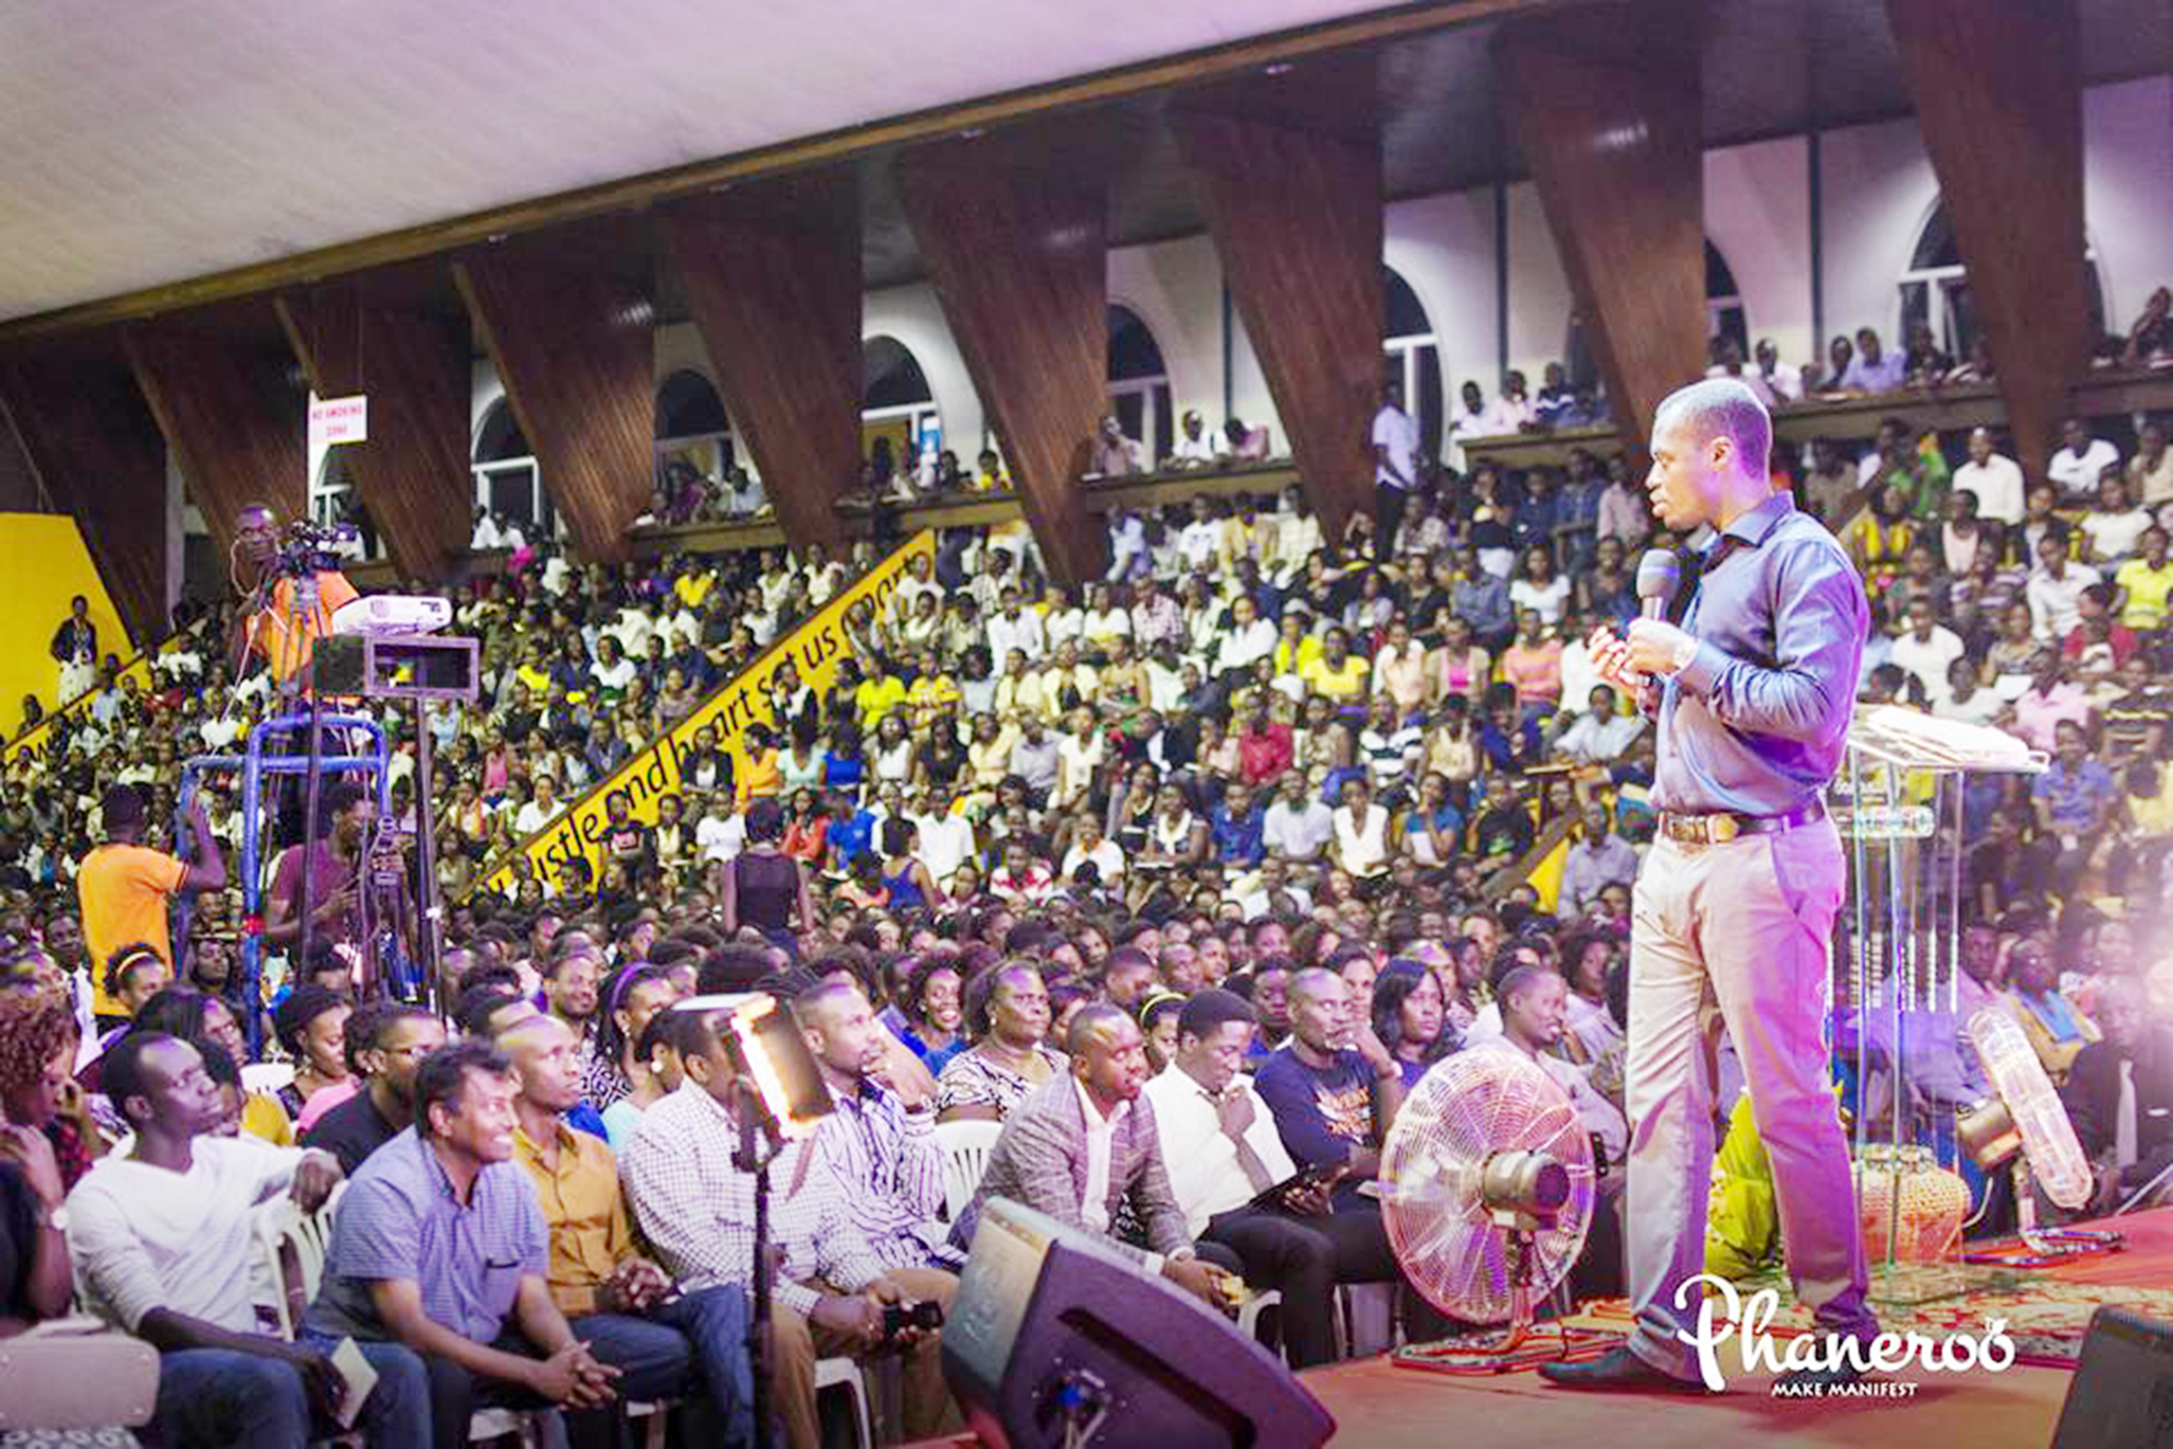 Apostle Grace Lubega of Phaneroo.